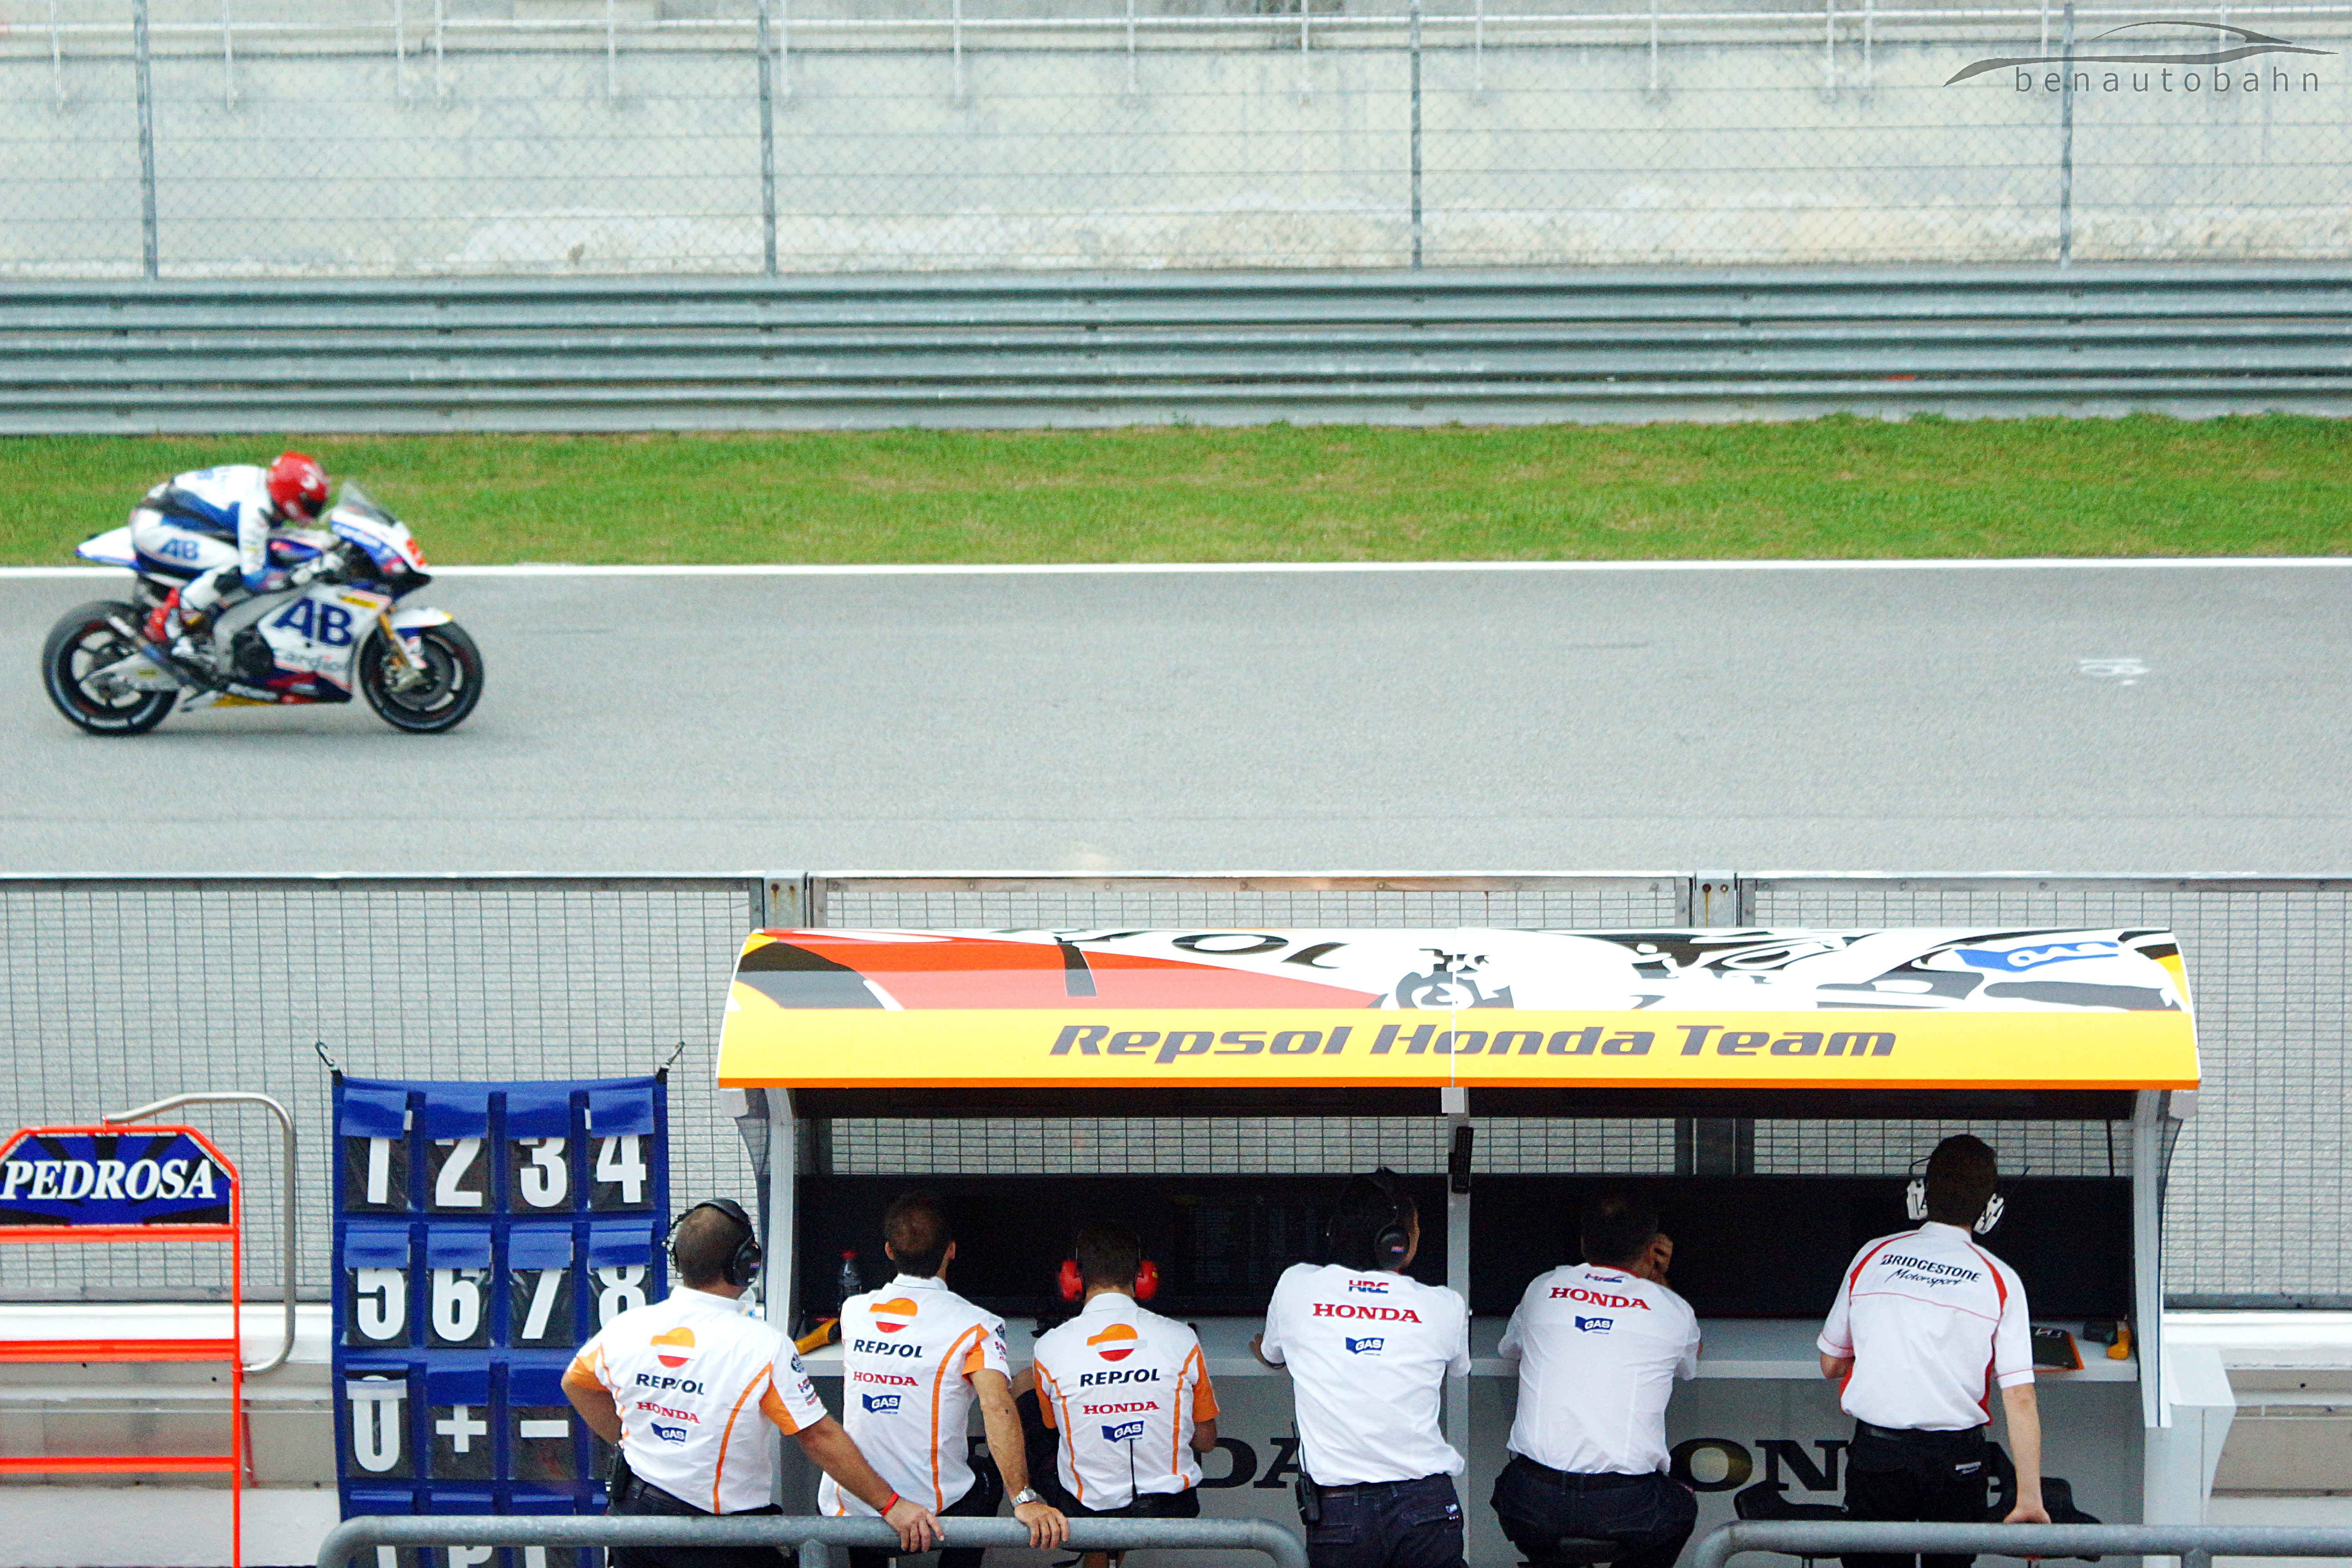 Motorsports have been safer than ever, but the risk remains...